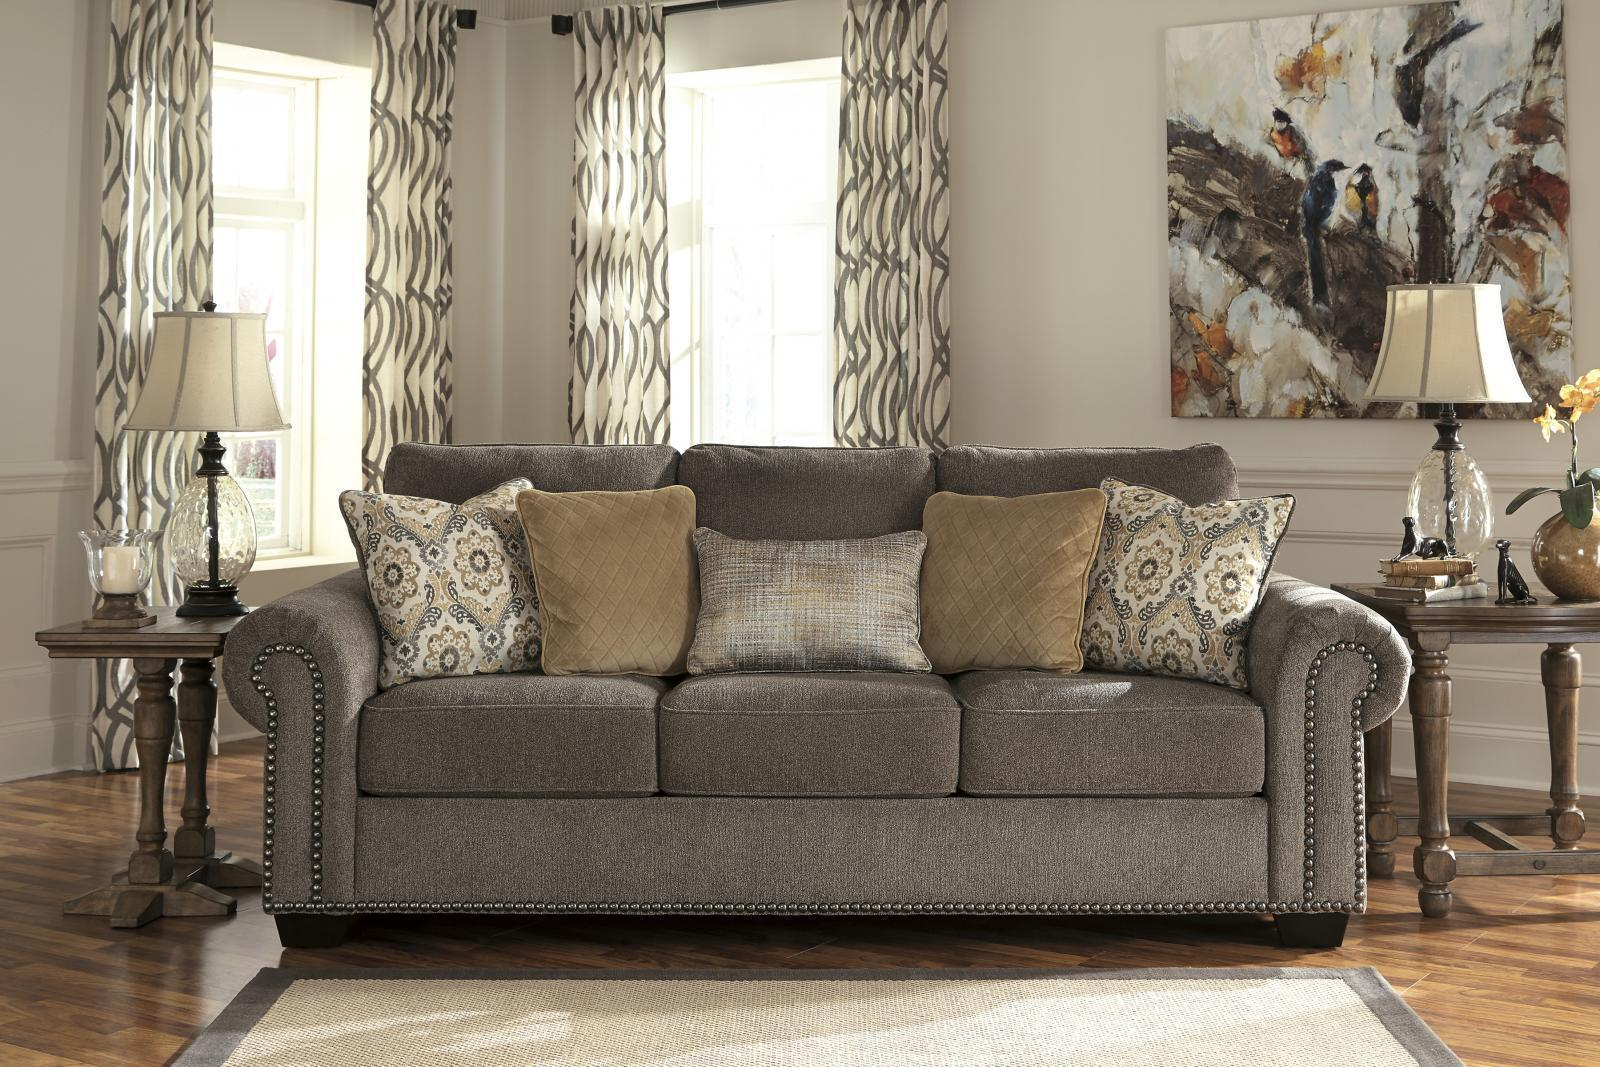 Ashley Emelen Living Room Set 3pcs in Alloy Upholstery Fabric Contemporary Style